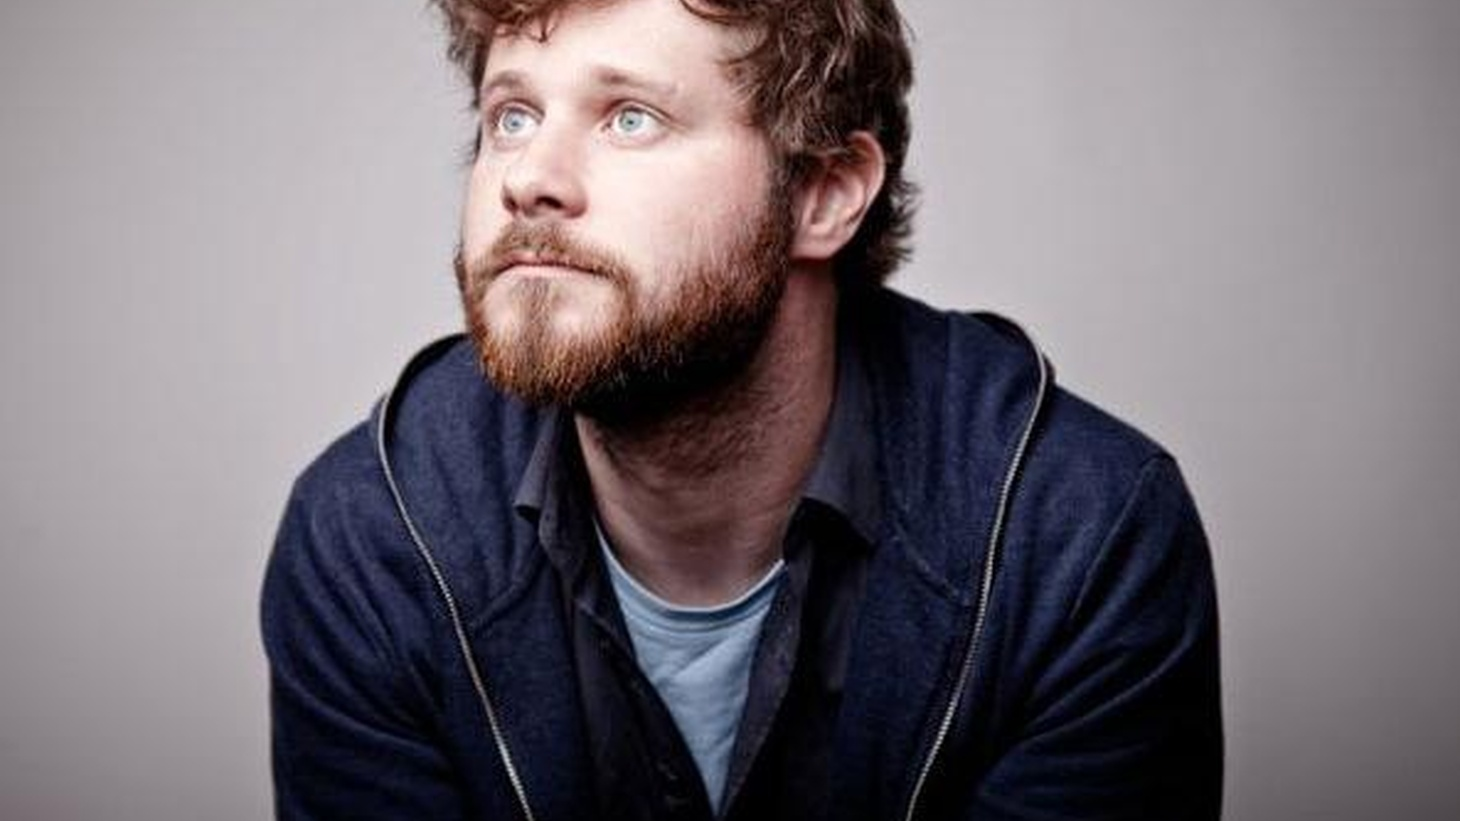 Folk crooner Dan Mangan has gained a following in his native Canada for his catchy melodies and clever lyrics...